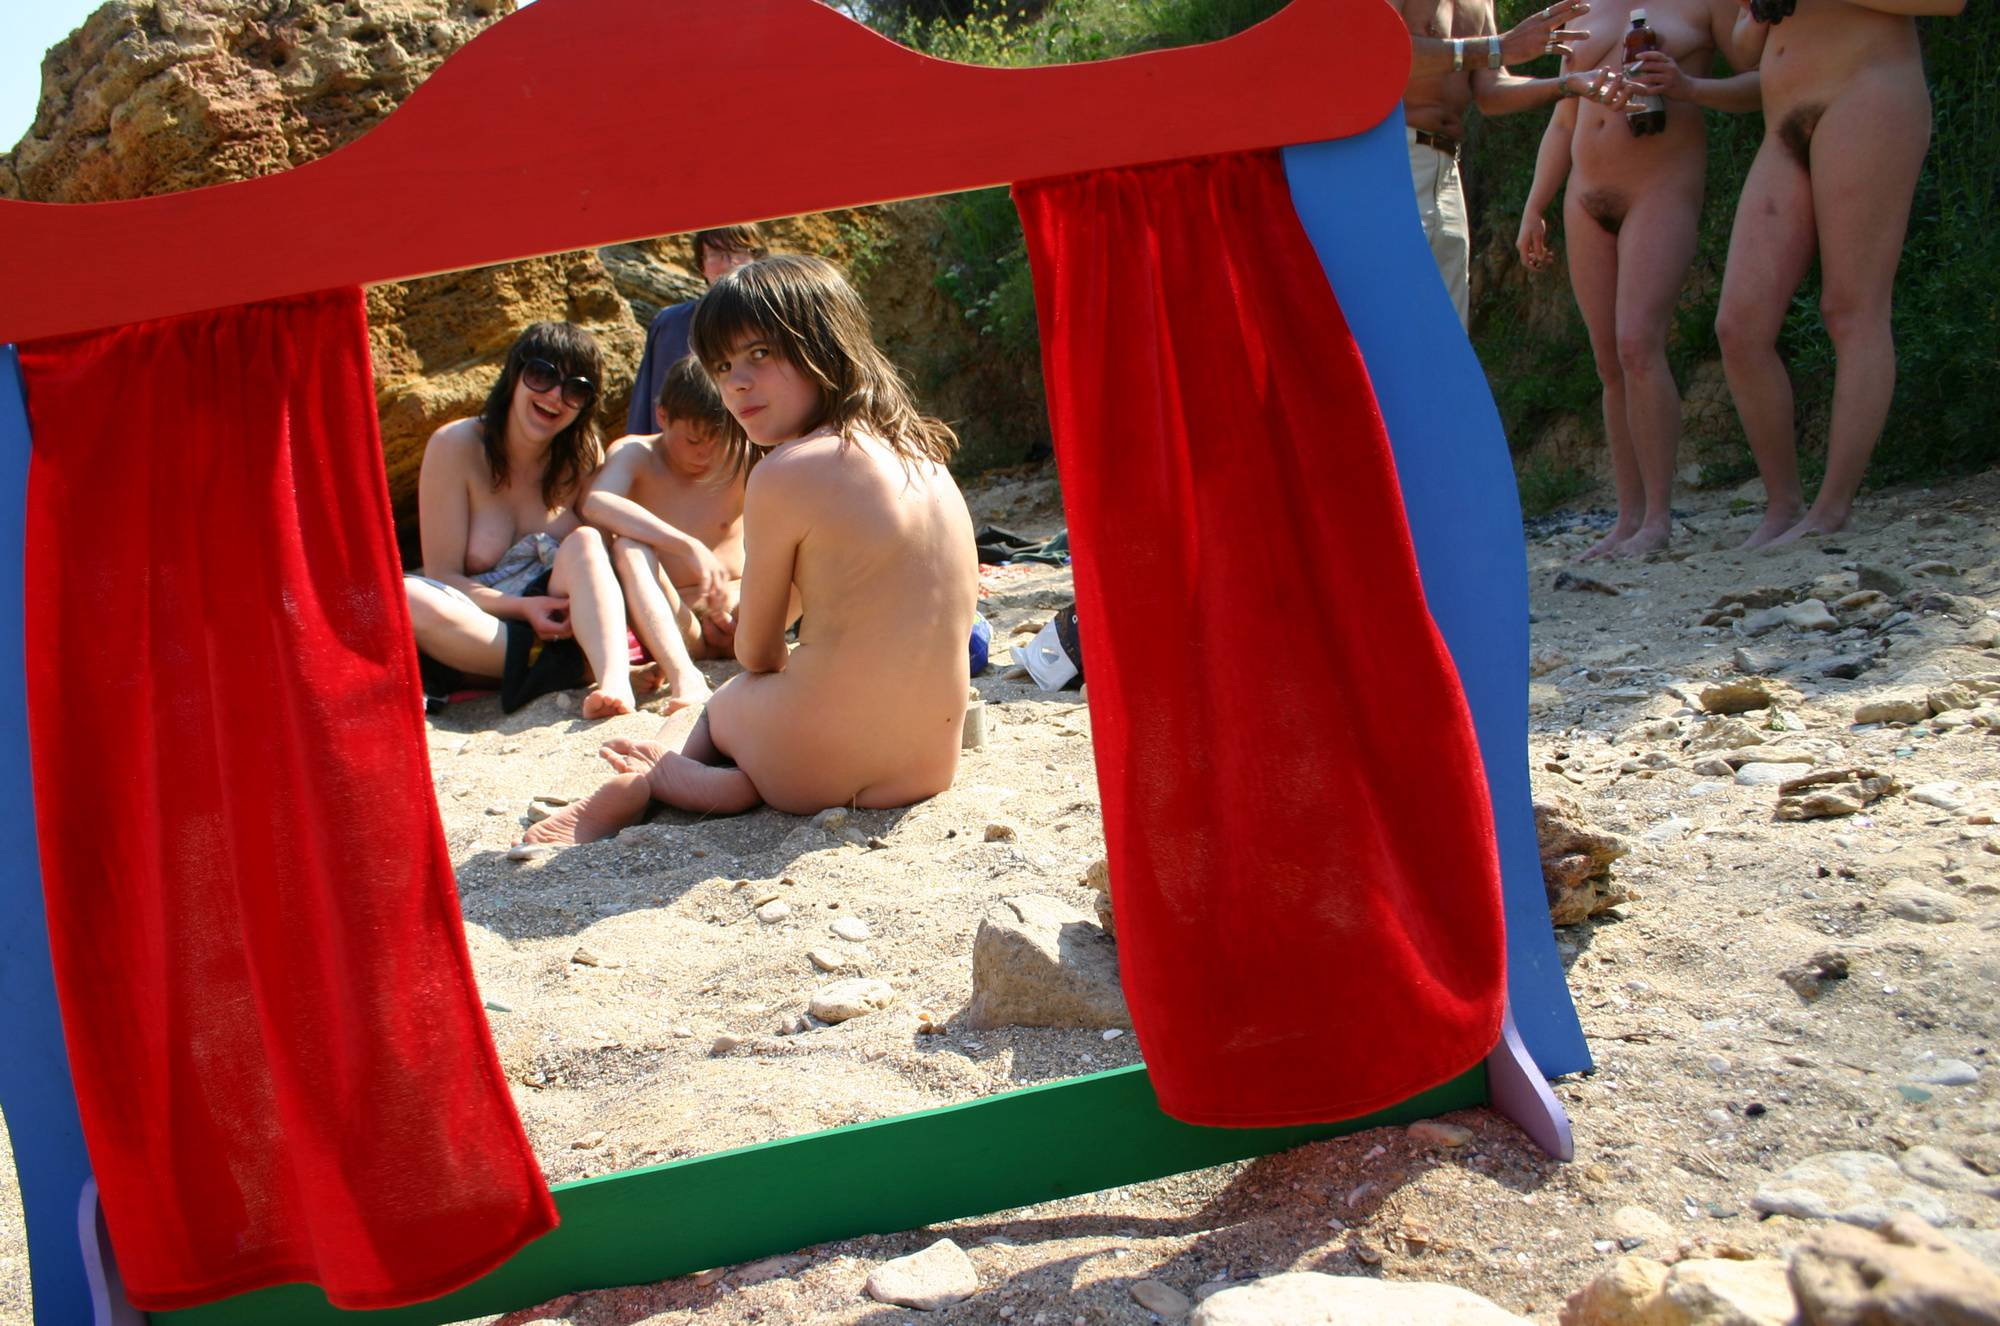 Pure Nudism Pics Nude Puppet Show Stand - 1